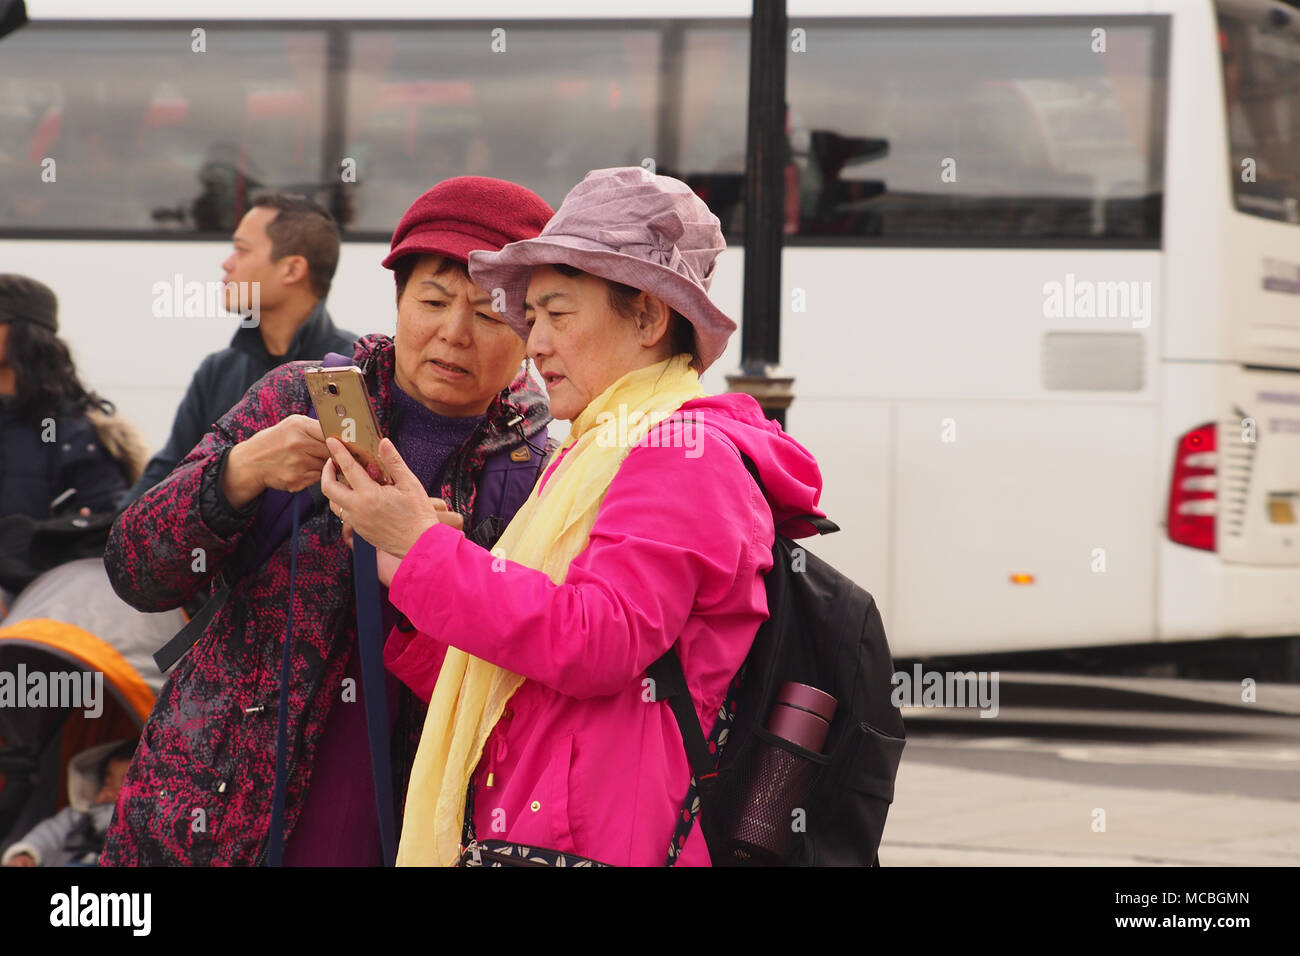 Two older women looking at a smartphone in Trafalgar Square, London one wearing a bright pink coat and hat and a white coach in the background - Stock Image